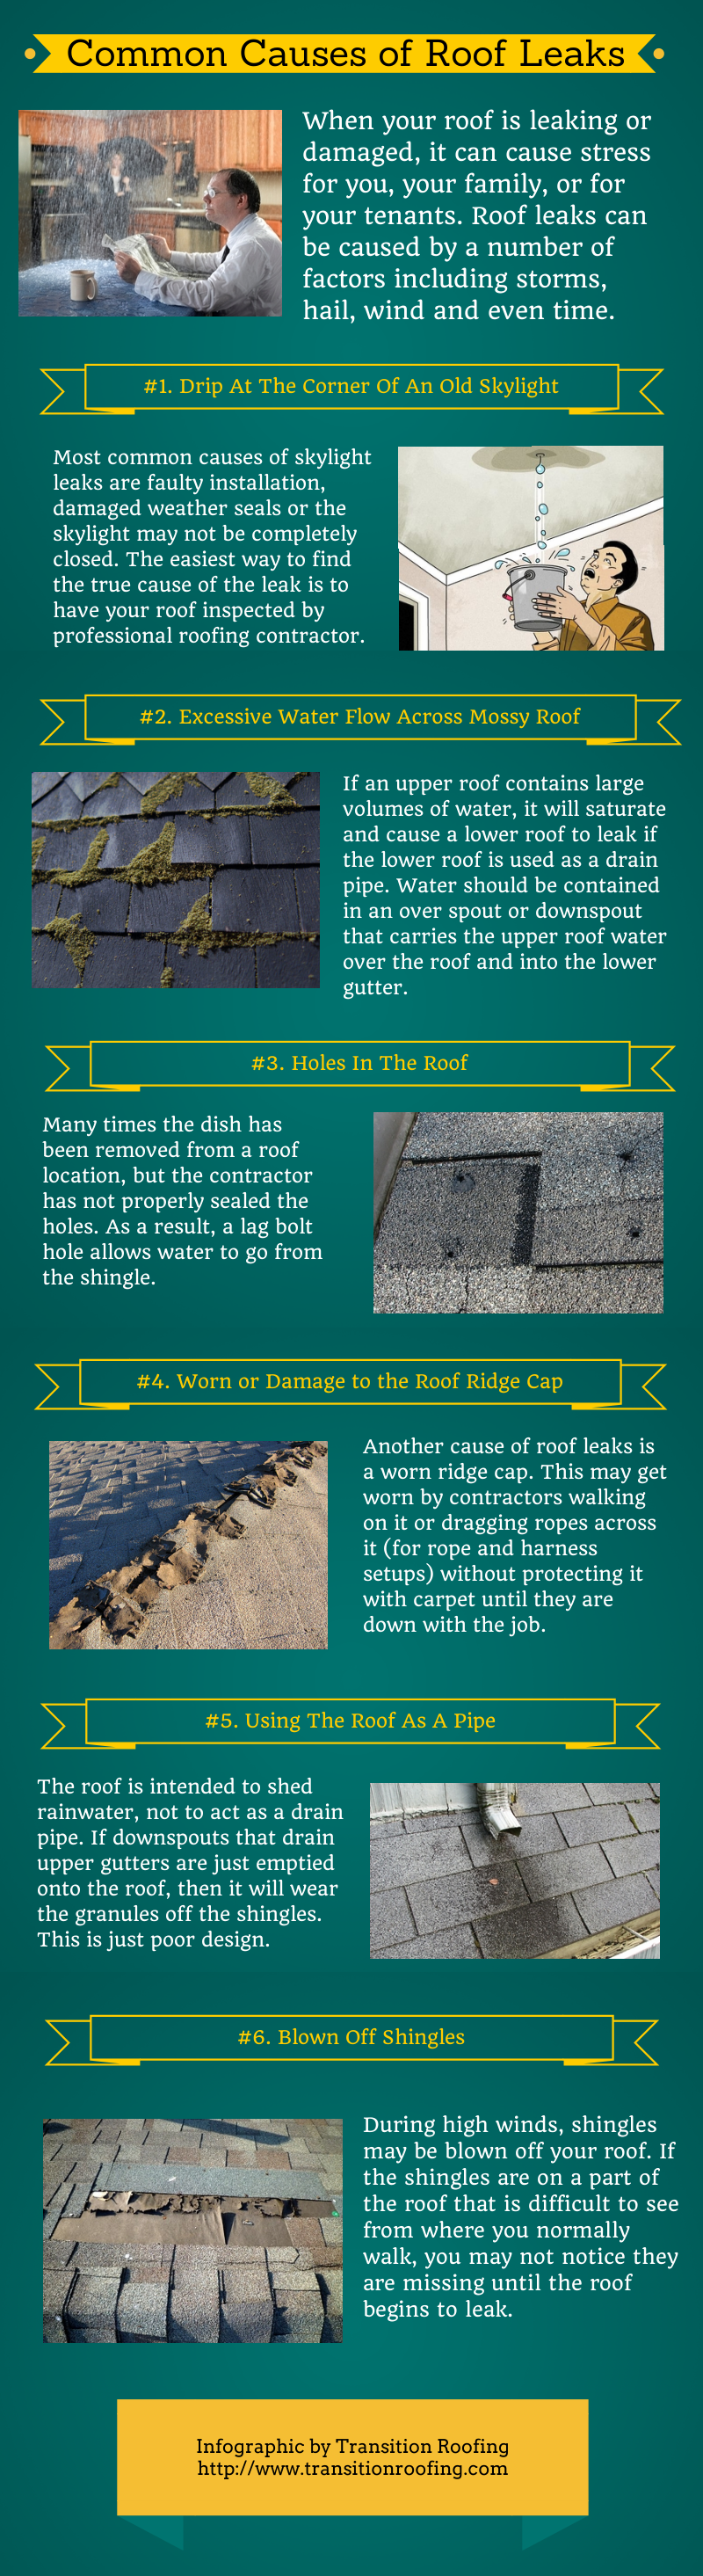 Common Causes of Roof Leaks by Transition Roofing